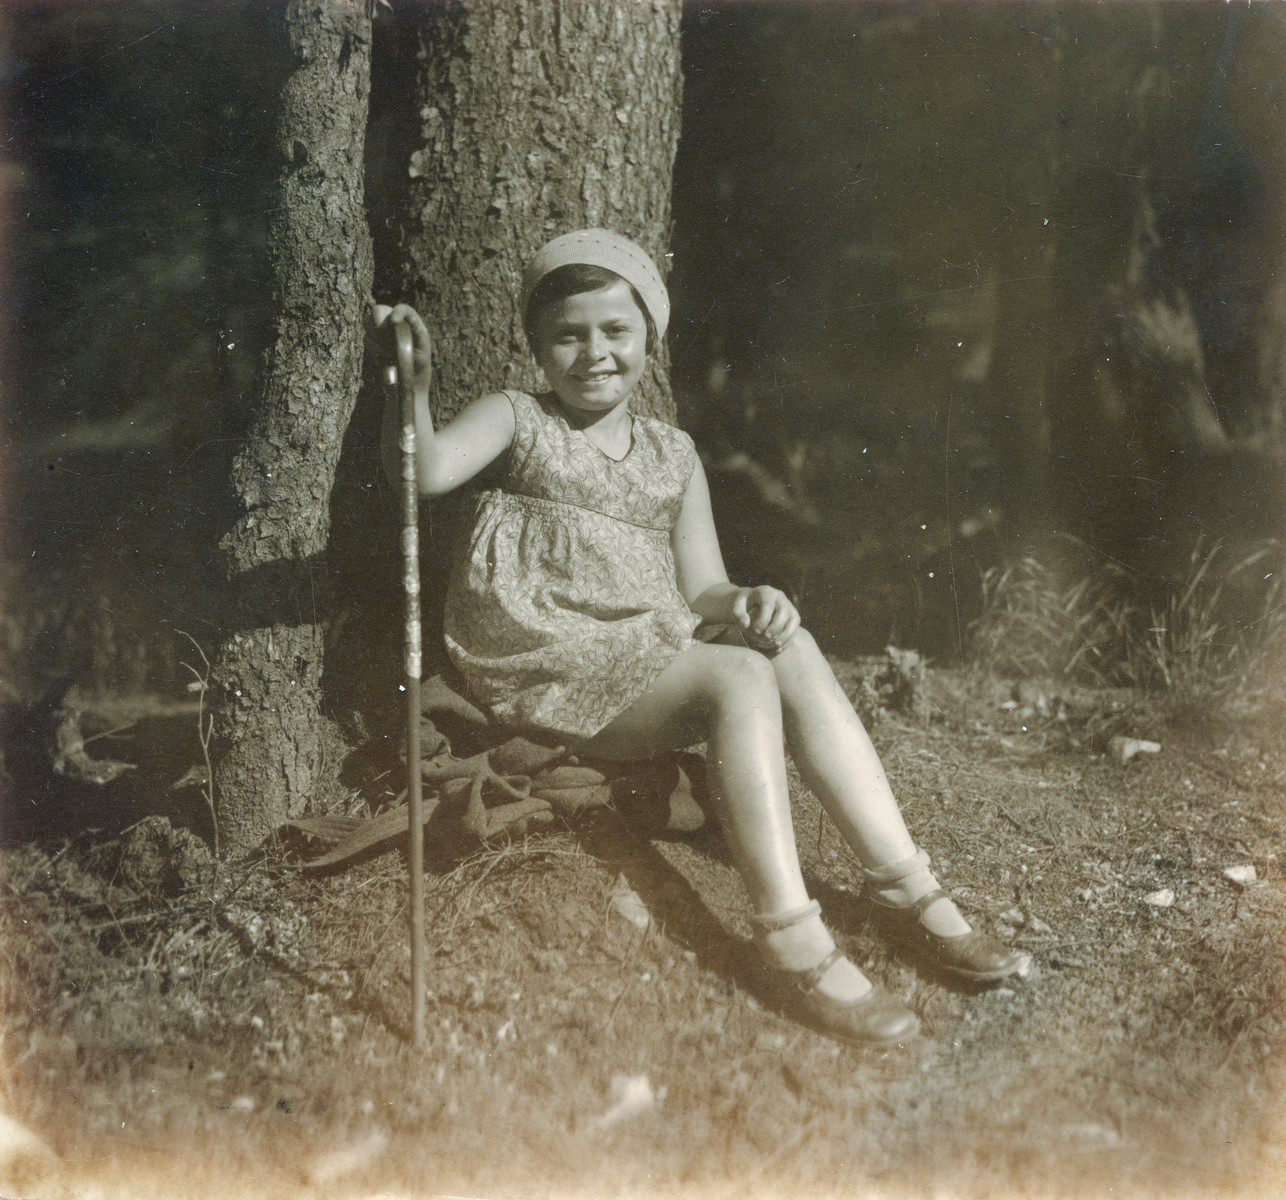 Hana Lustig rests under a large tree during a hike.